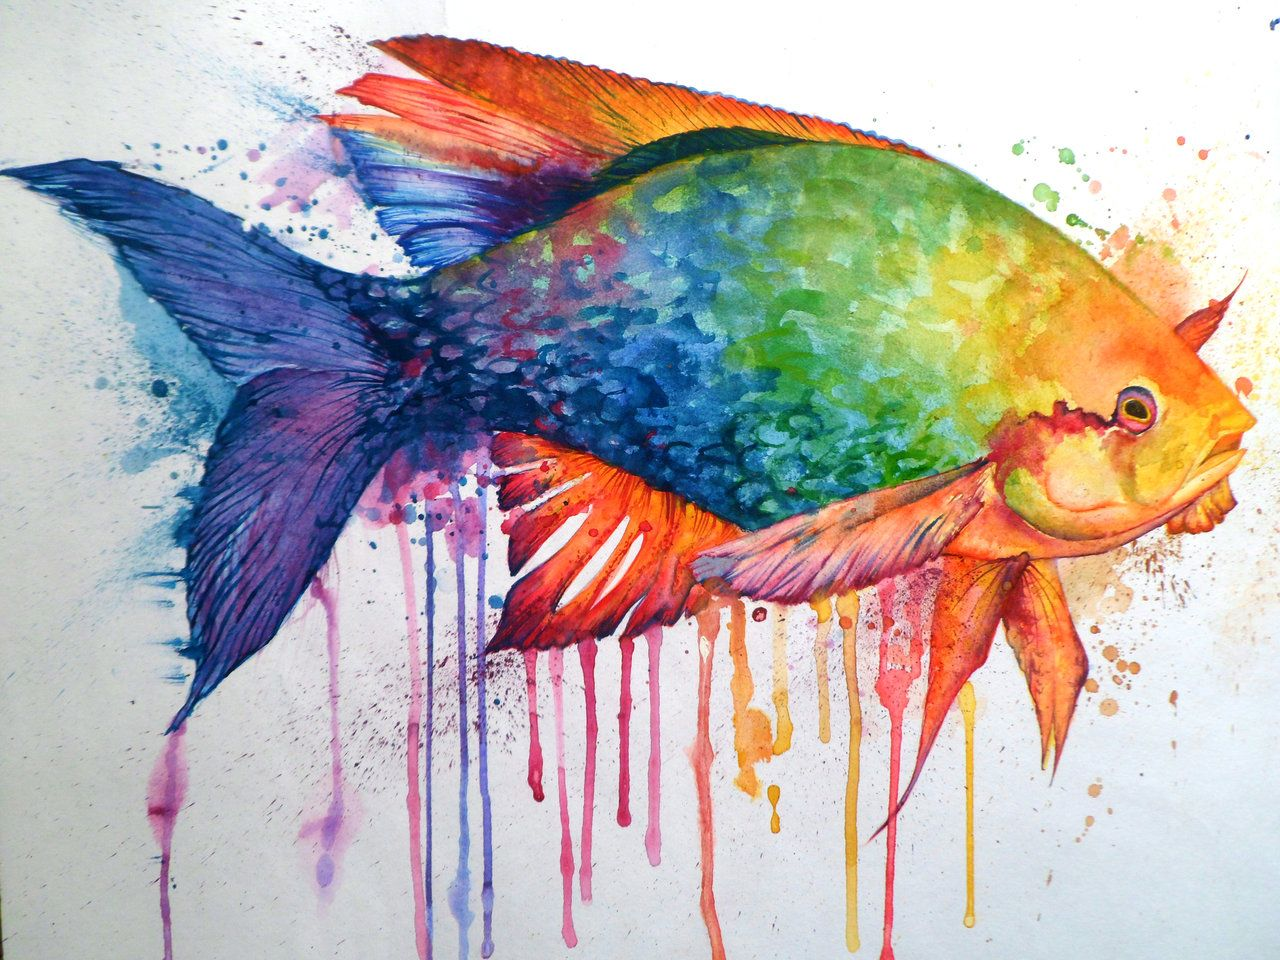 Fish paintings abstract google search fish art for How to paint a fish